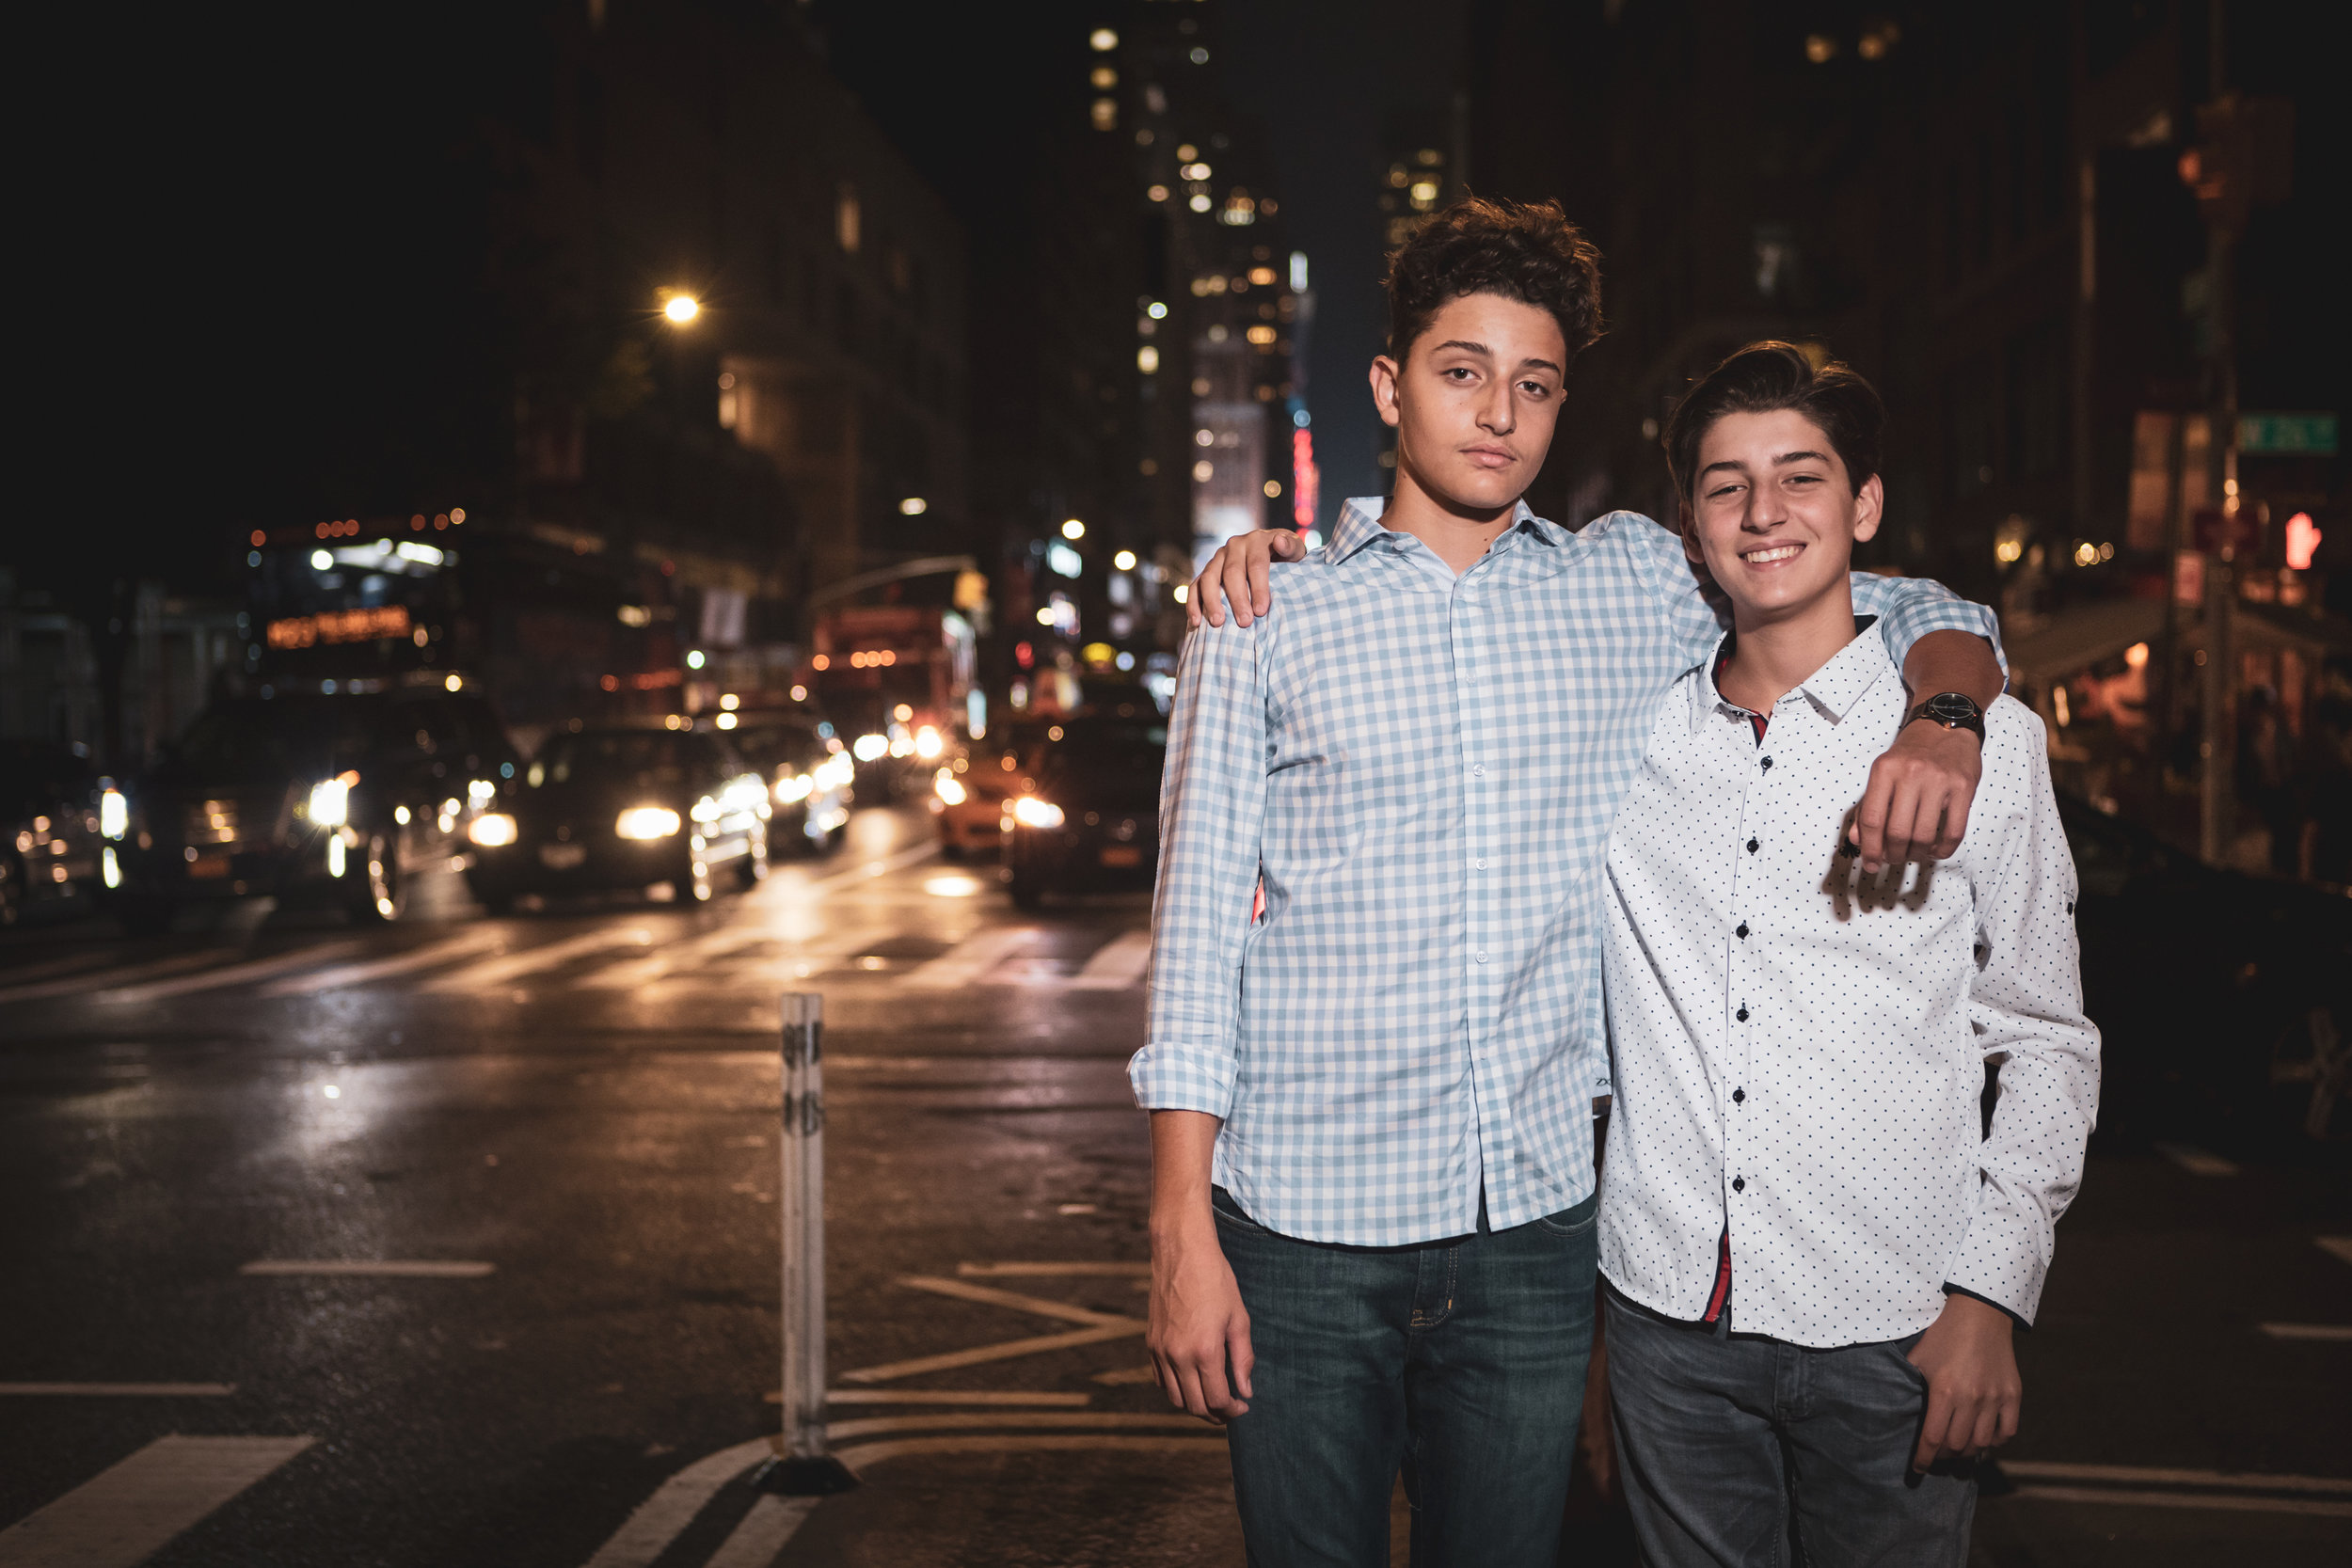 035_087_Z8 Clothing - NYC - Dario and Luke_3000px.jpg